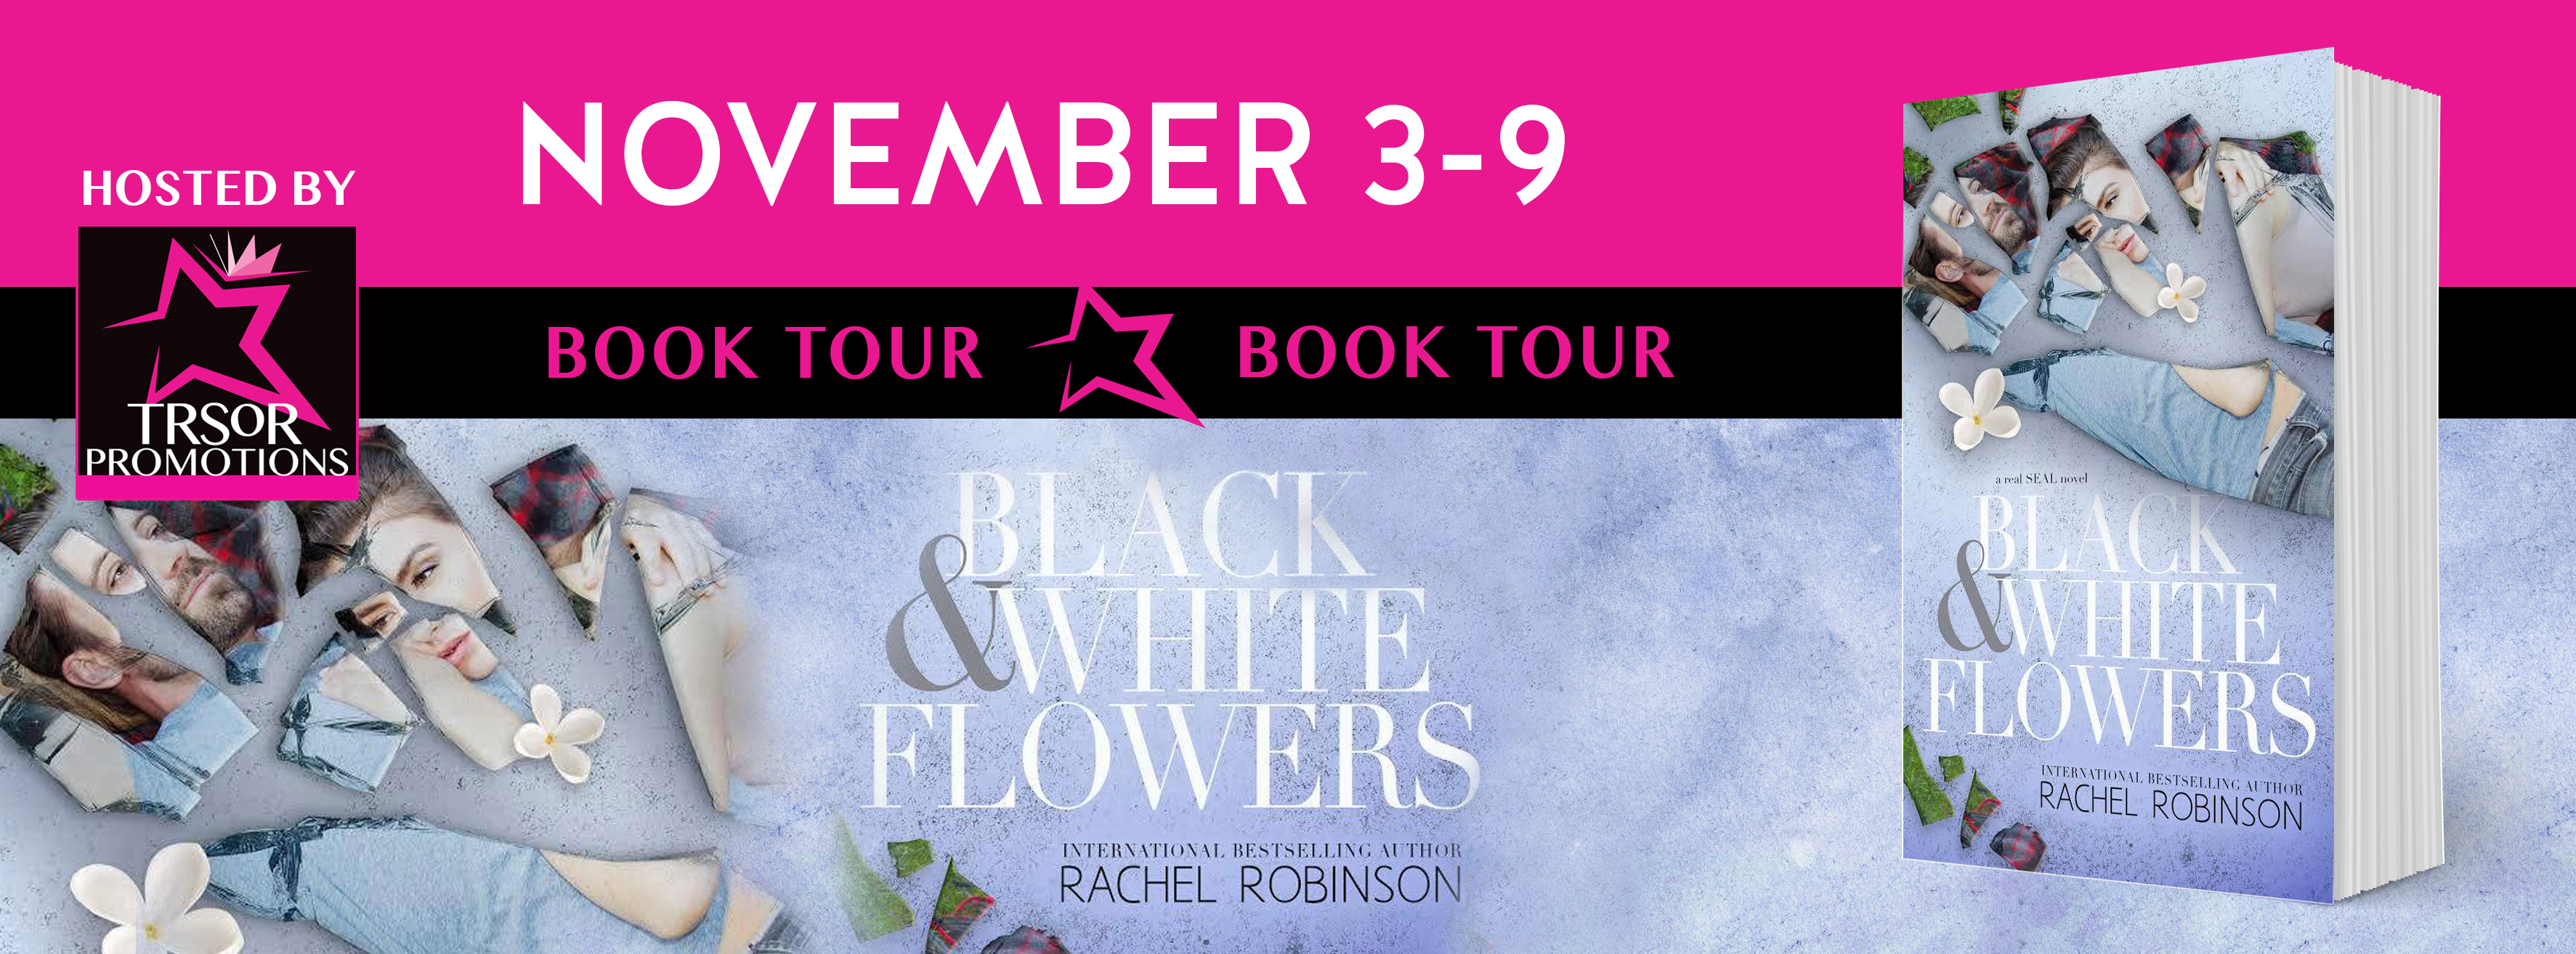 bw_flowers_book_tour